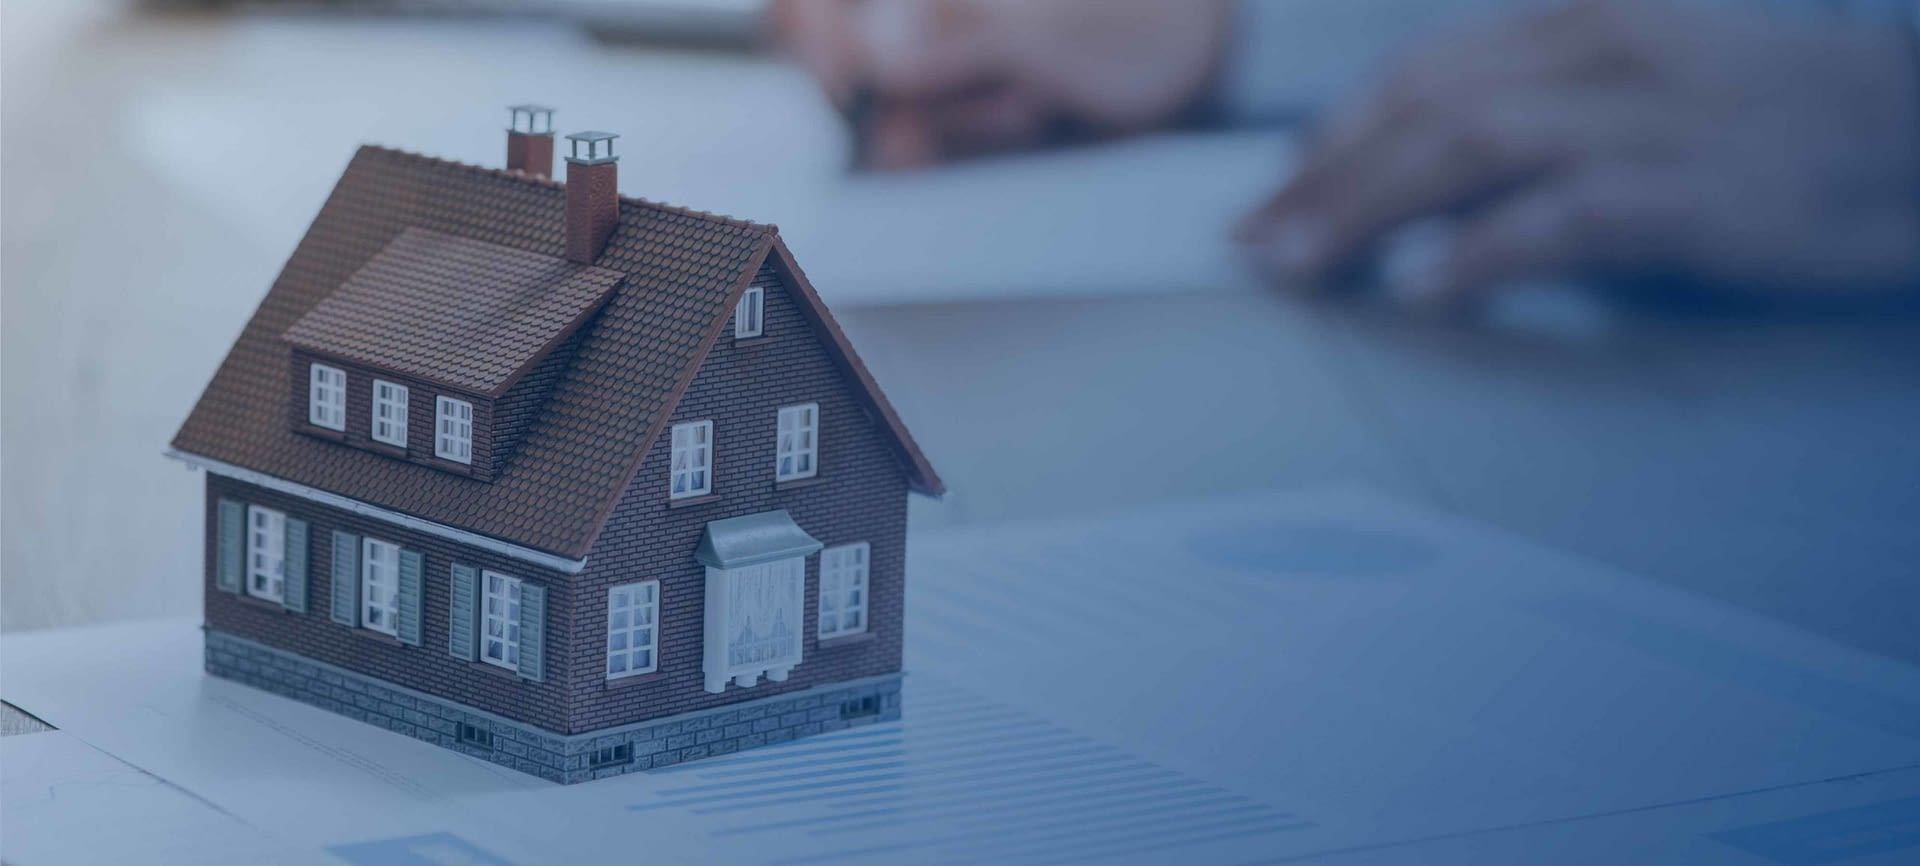 THINKING OF SWITCHING REAL ESTATE AGENTS?